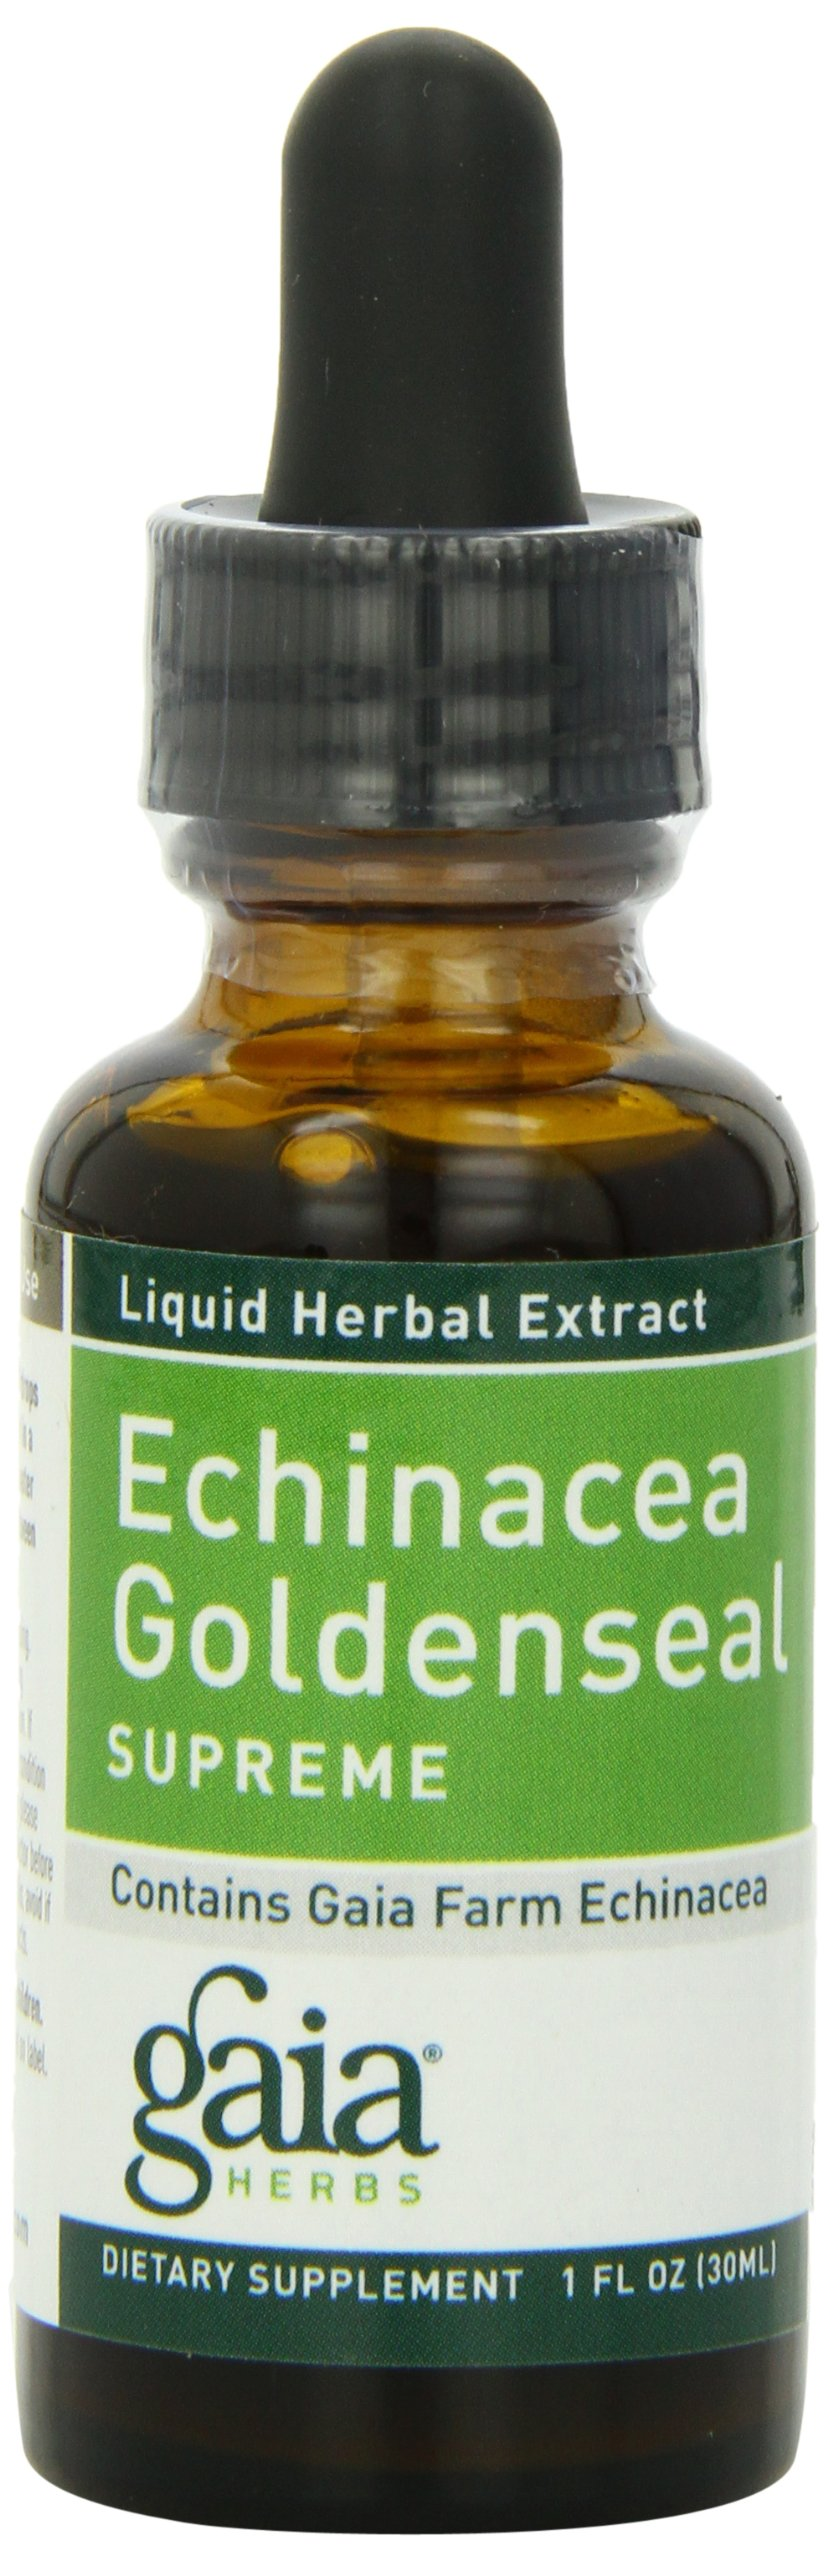 Gaia Herbs Echinacea Goldenseal Supreme 1-Ounce Bottle (Pack of 4)